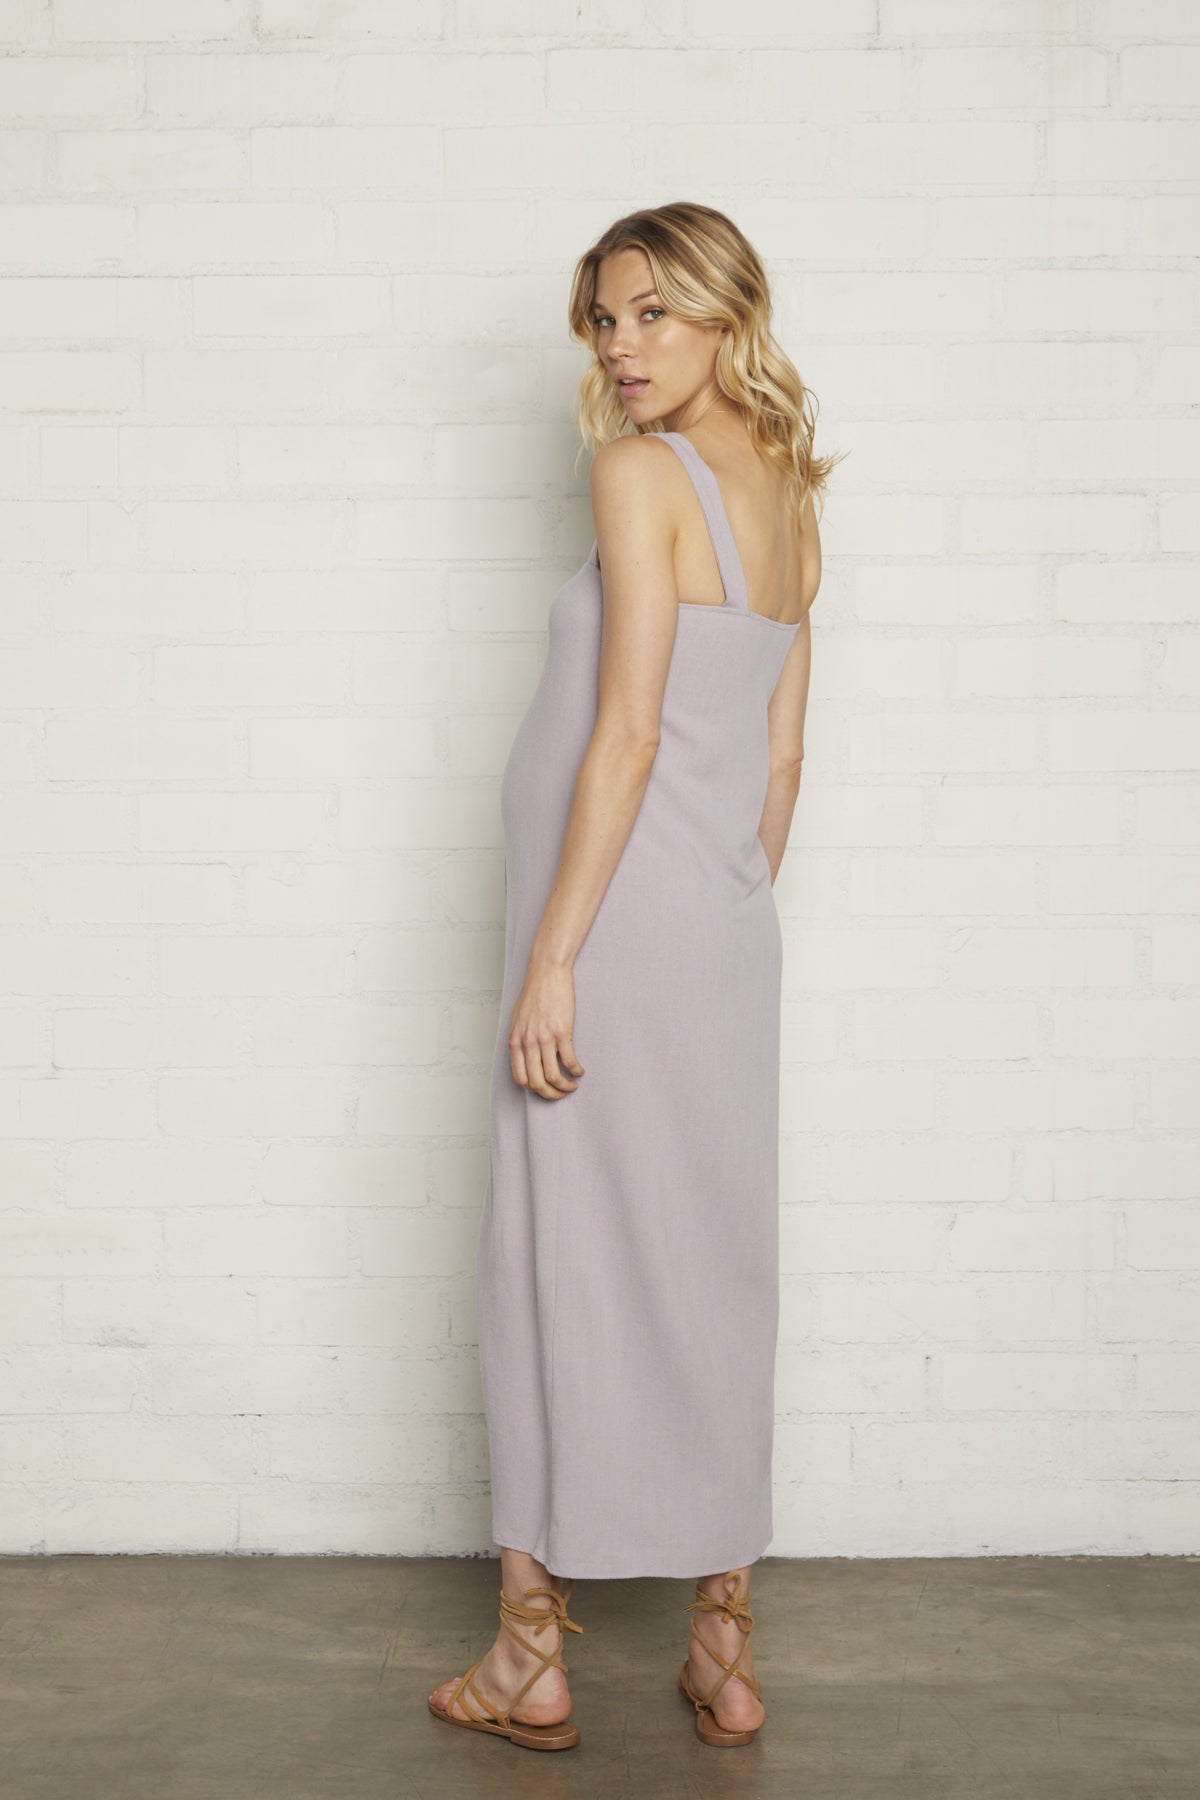 Linen Rome Dress - Wisteria, Maternity